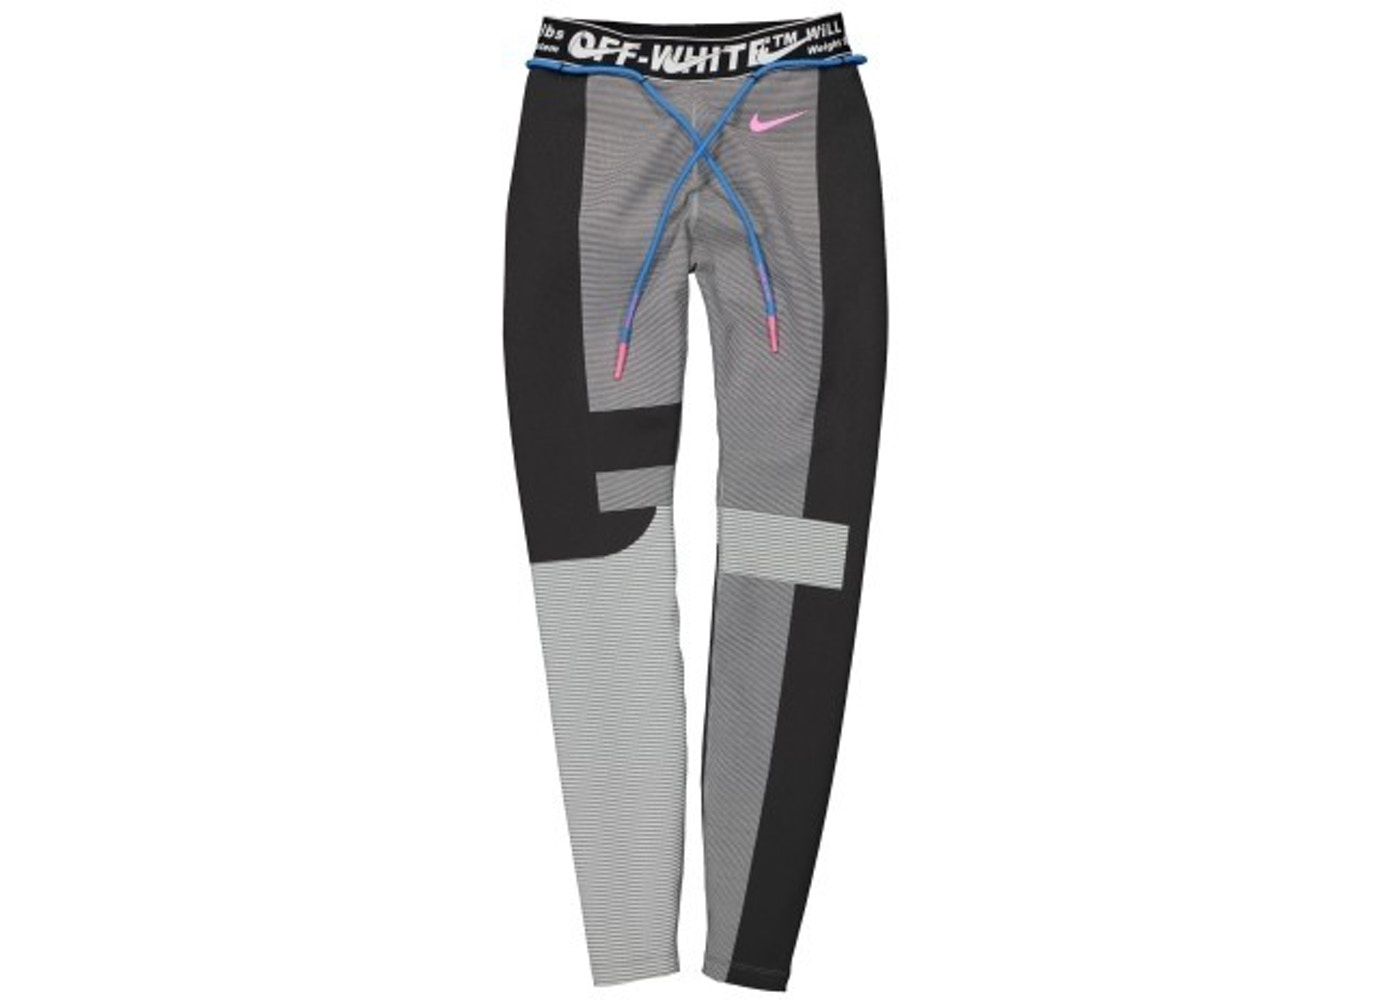 6300a1b9 OFF-WHITE x Nike Women's Easy Run Tight Vast Grey - SS19